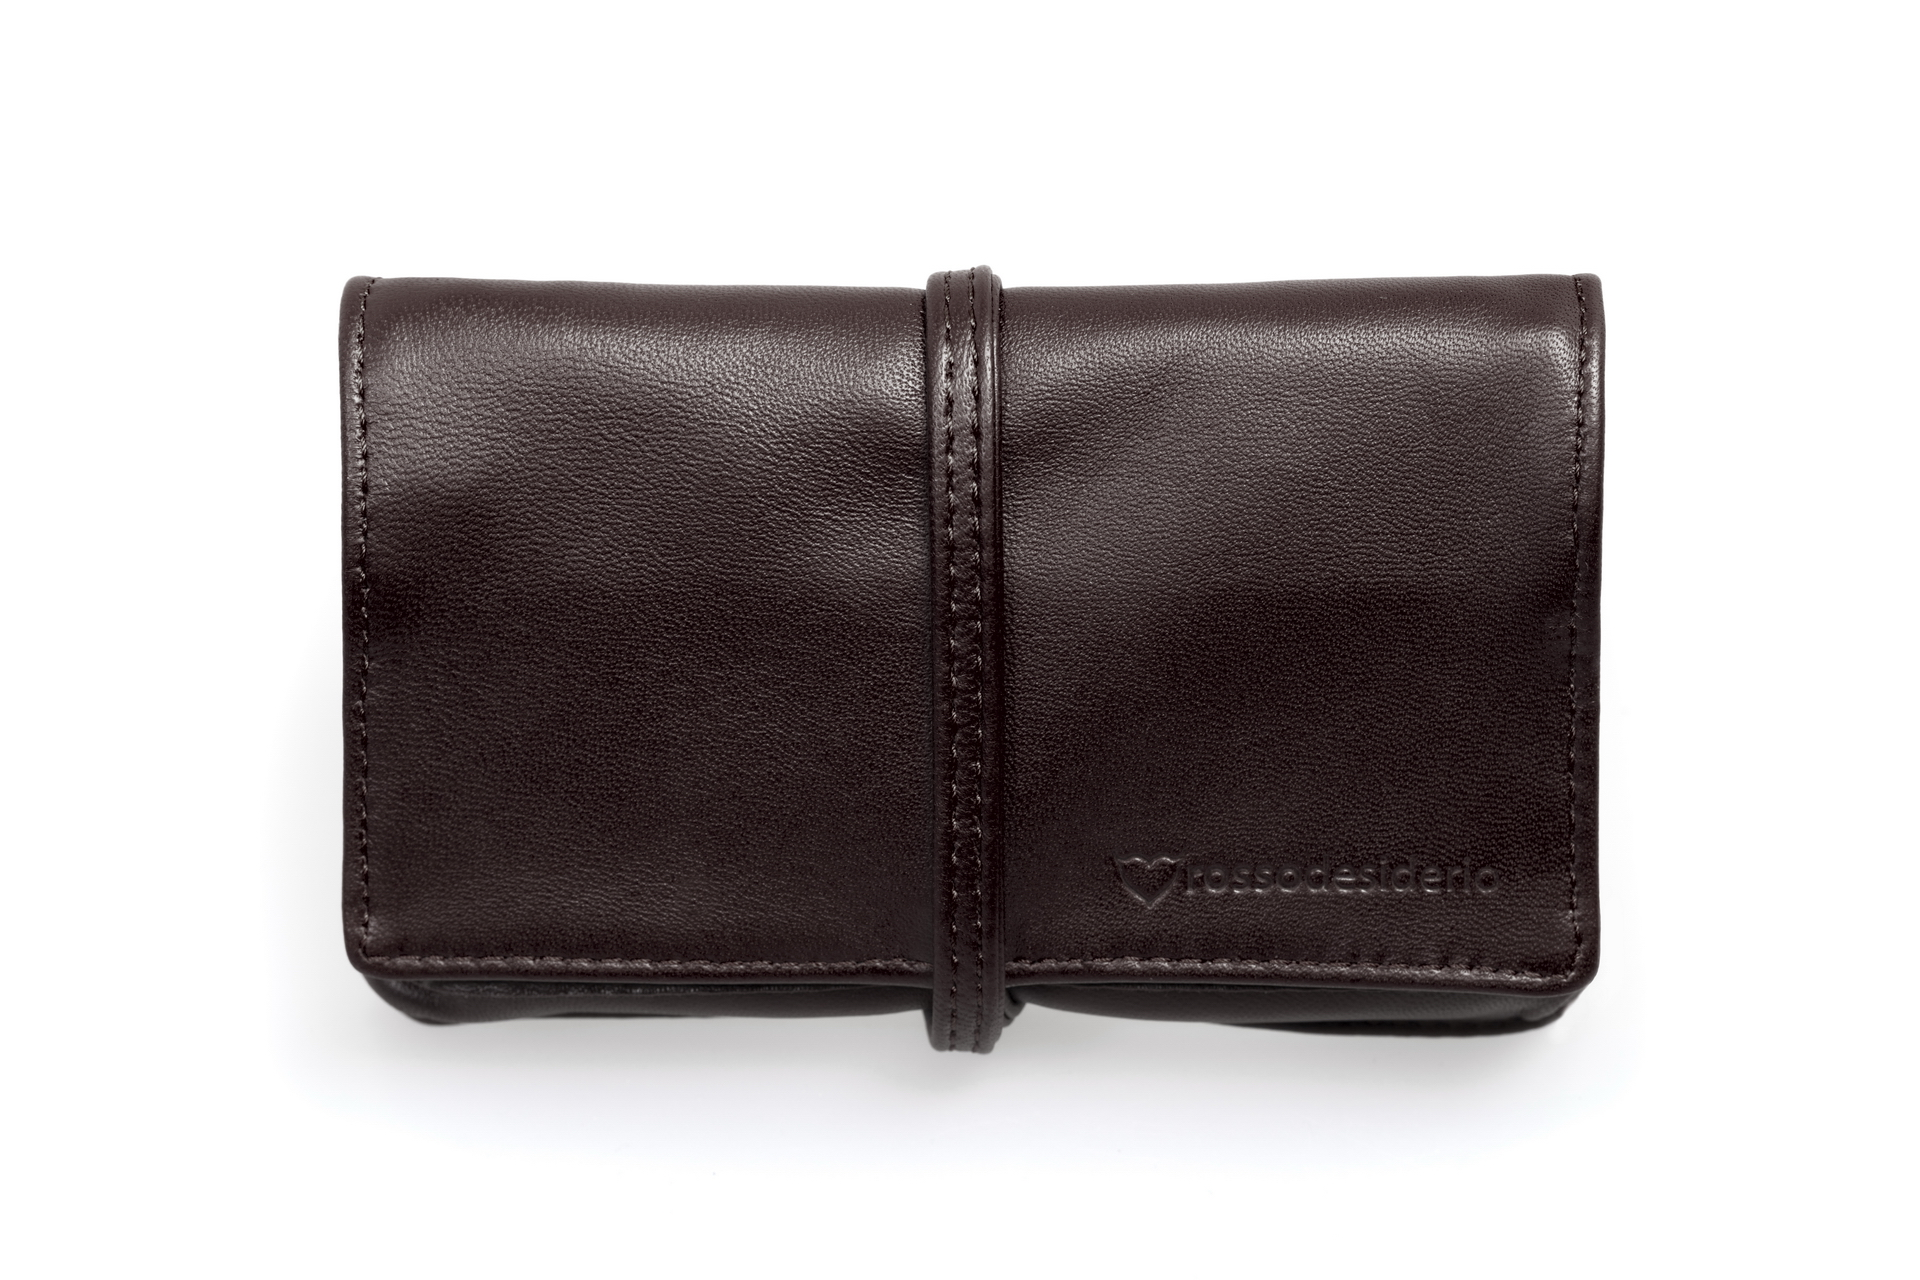 Real leather brown tobacco pouch